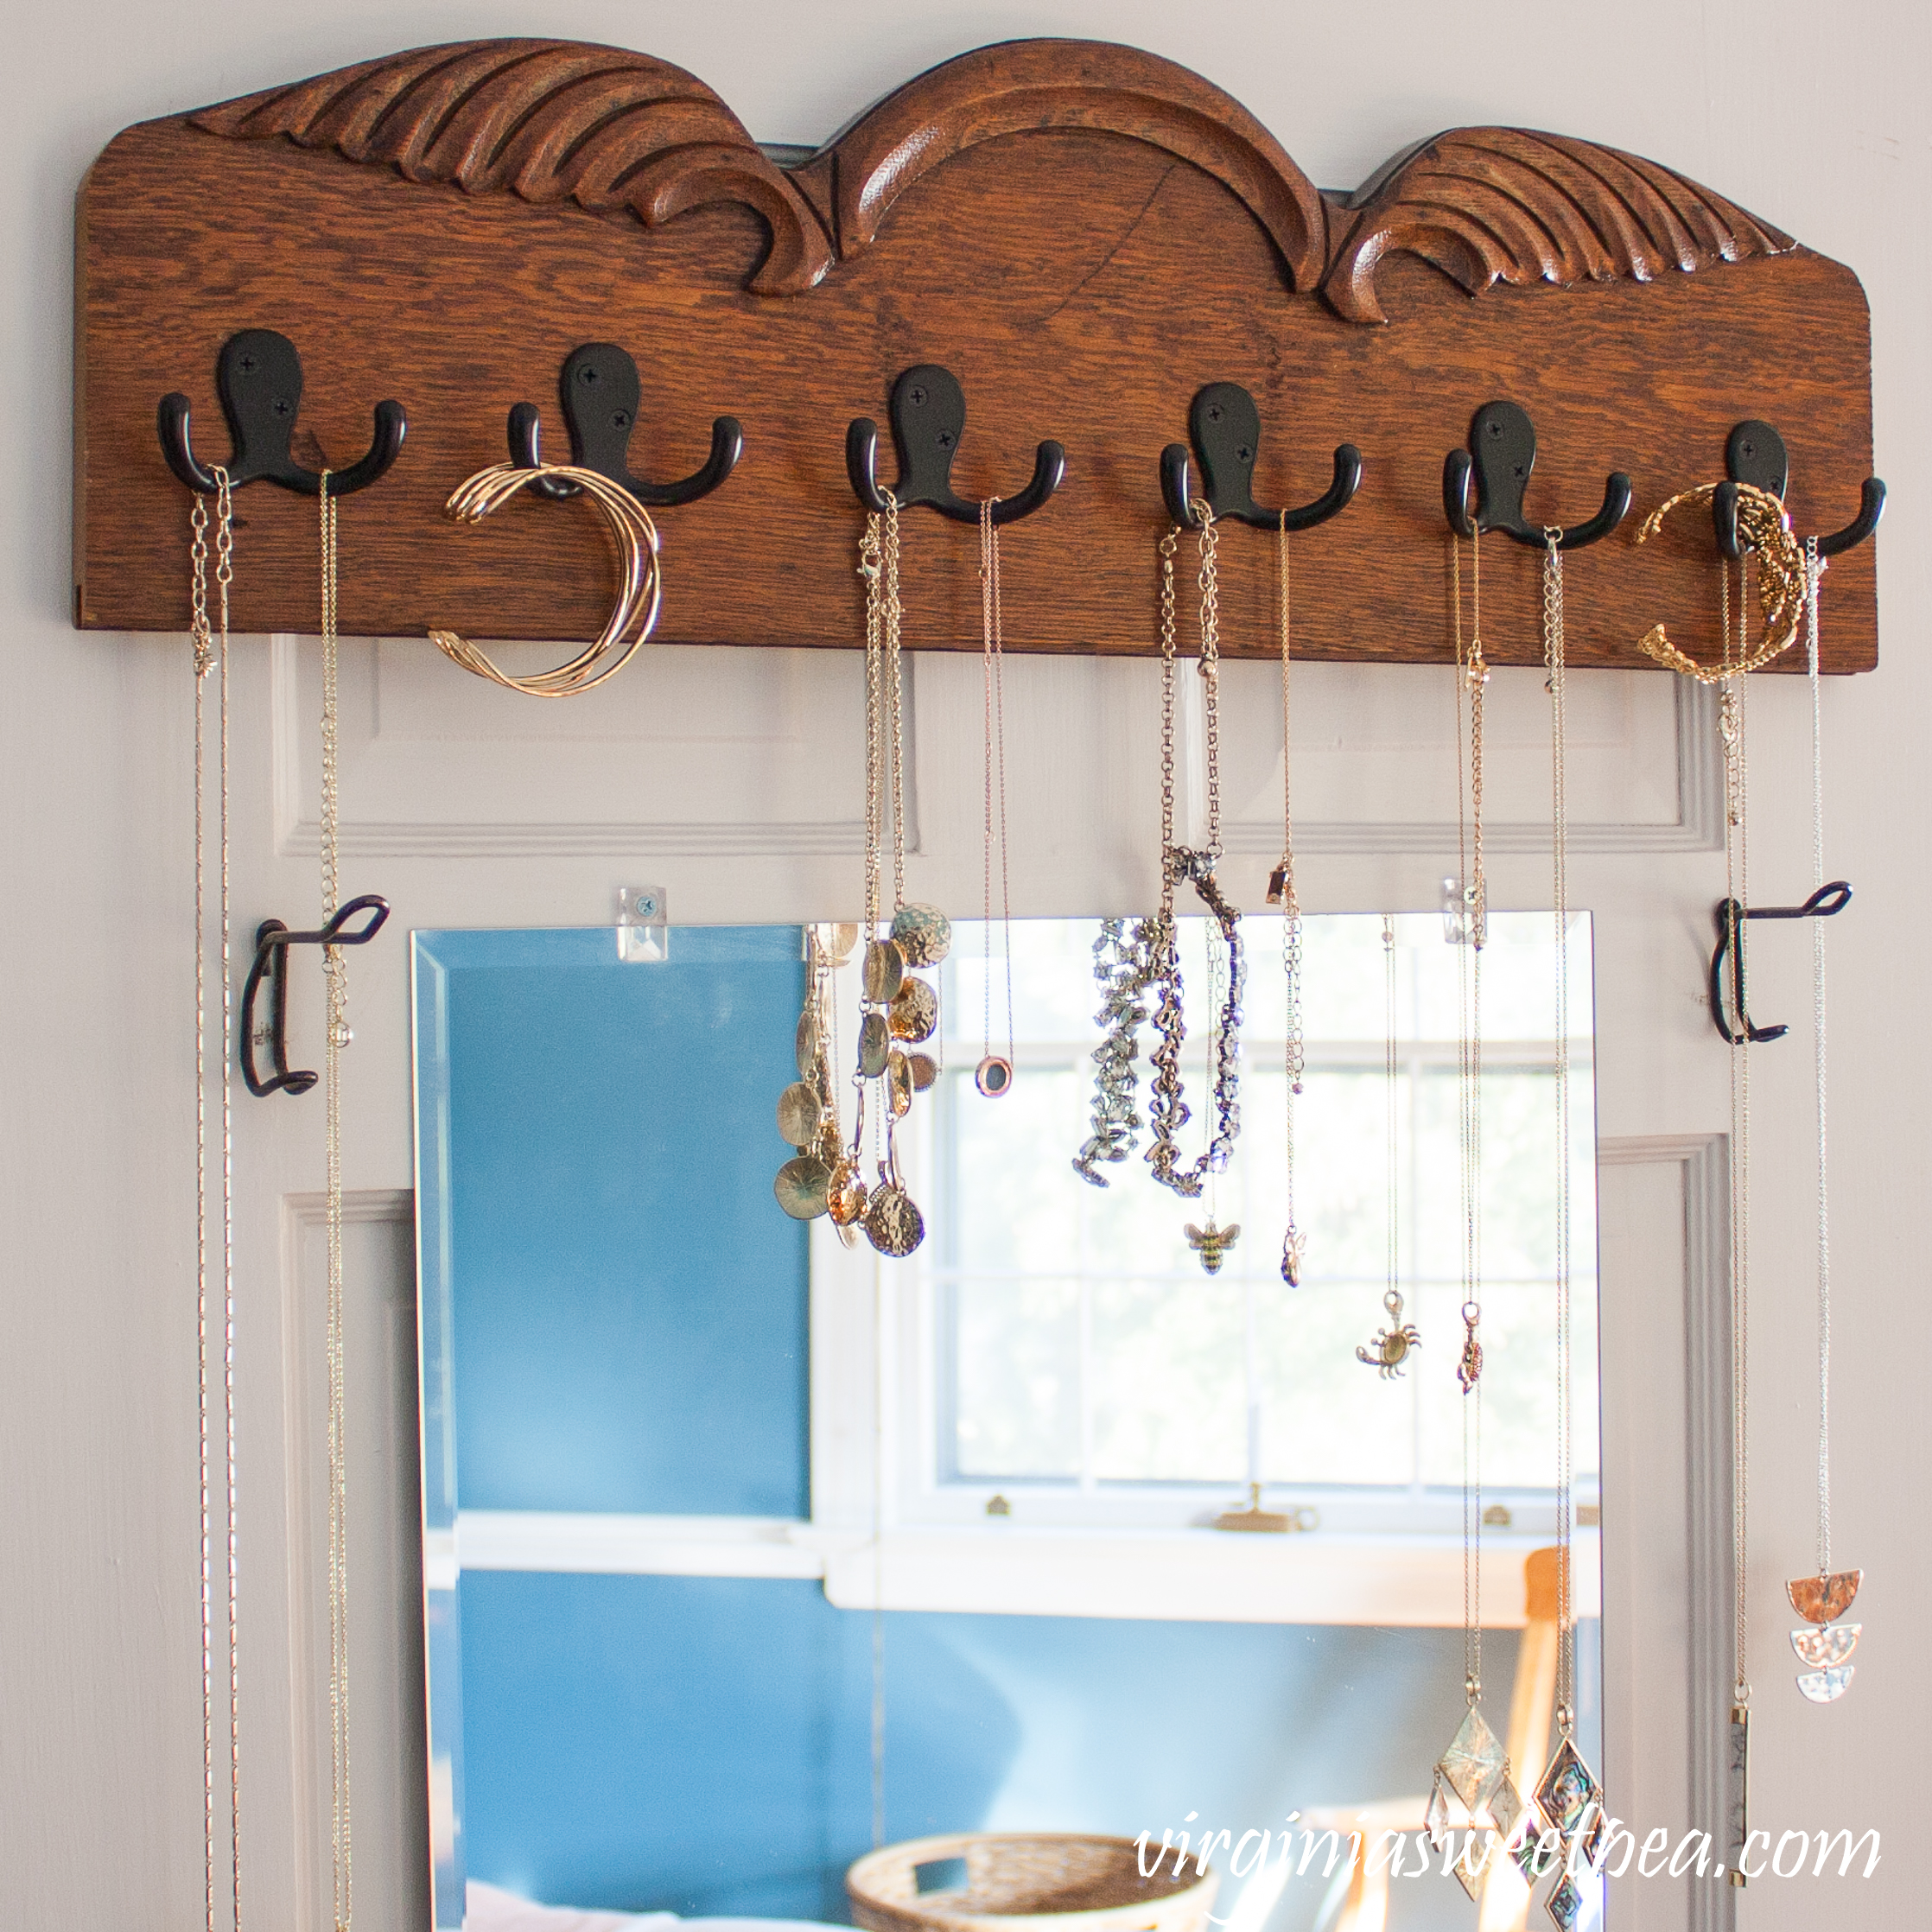 Follow this step-by-step tutorial to learn how to make a jewelry organizer using upcycled wood. #jewelryorganizer #diyjewelryorganizer #upcycledproject #woodworking